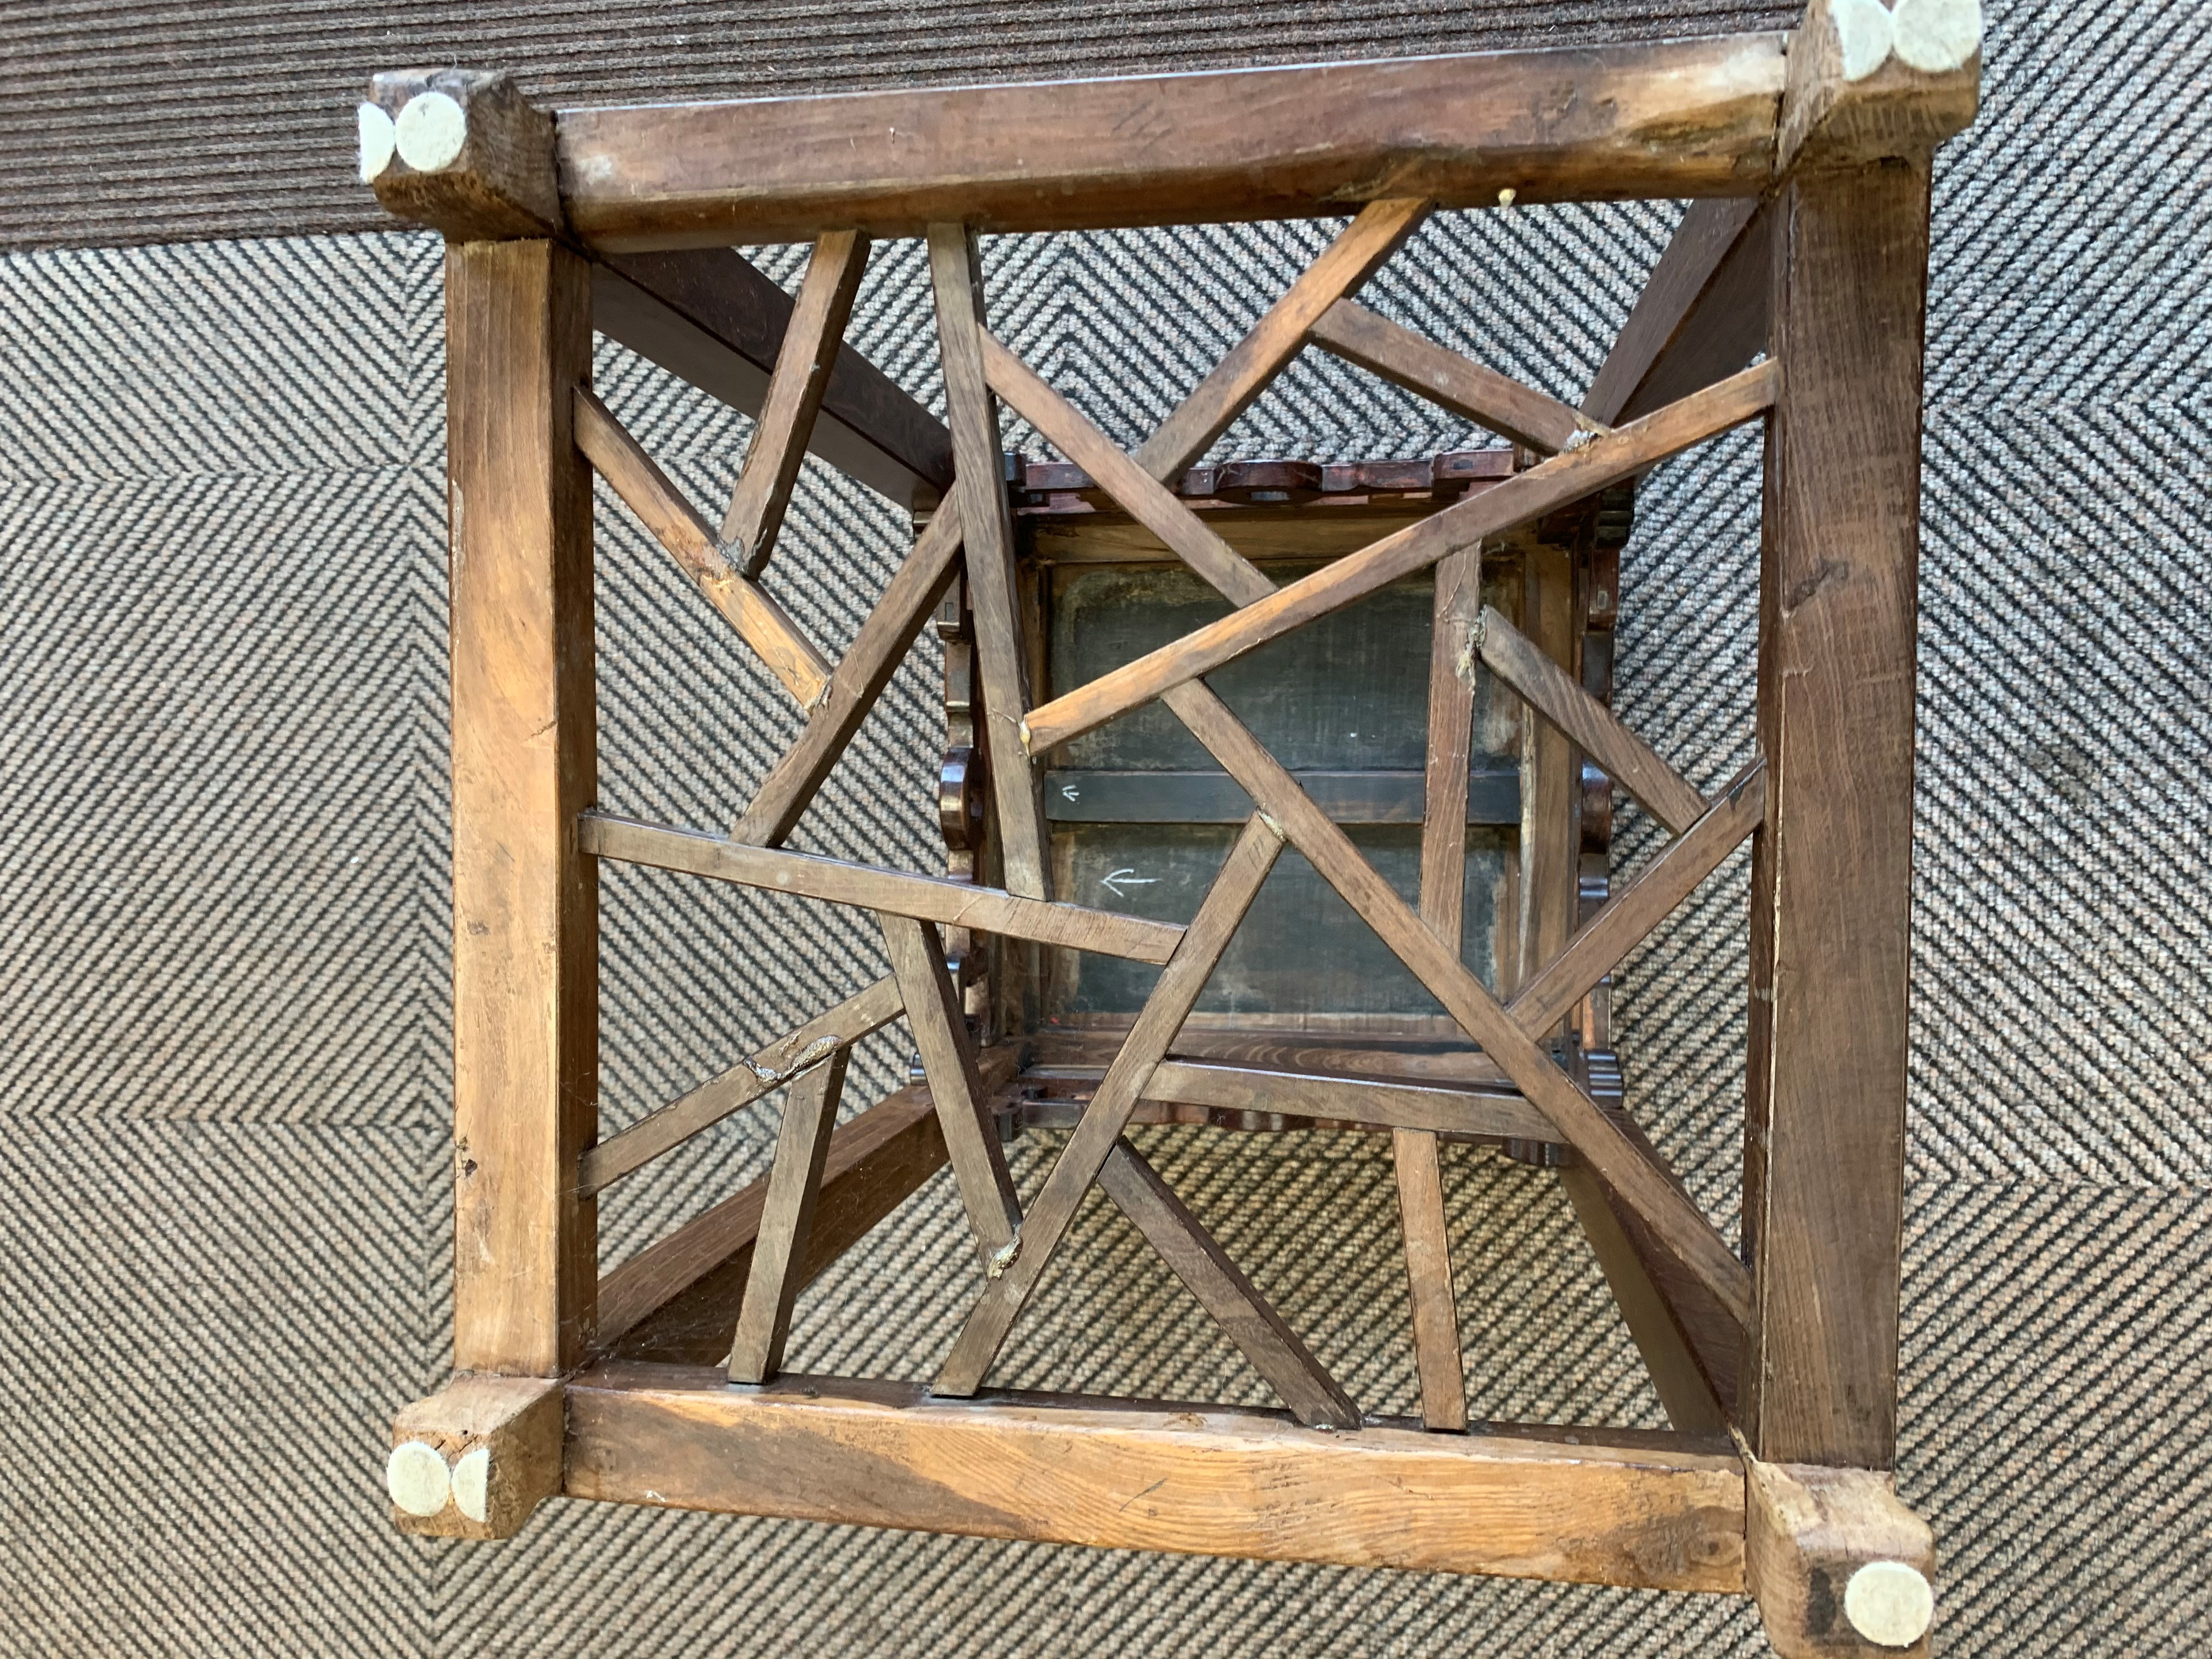 Chinese hardwood jardiniere stand, square topped raised on four legs united by cross stretchers, - Image 5 of 6